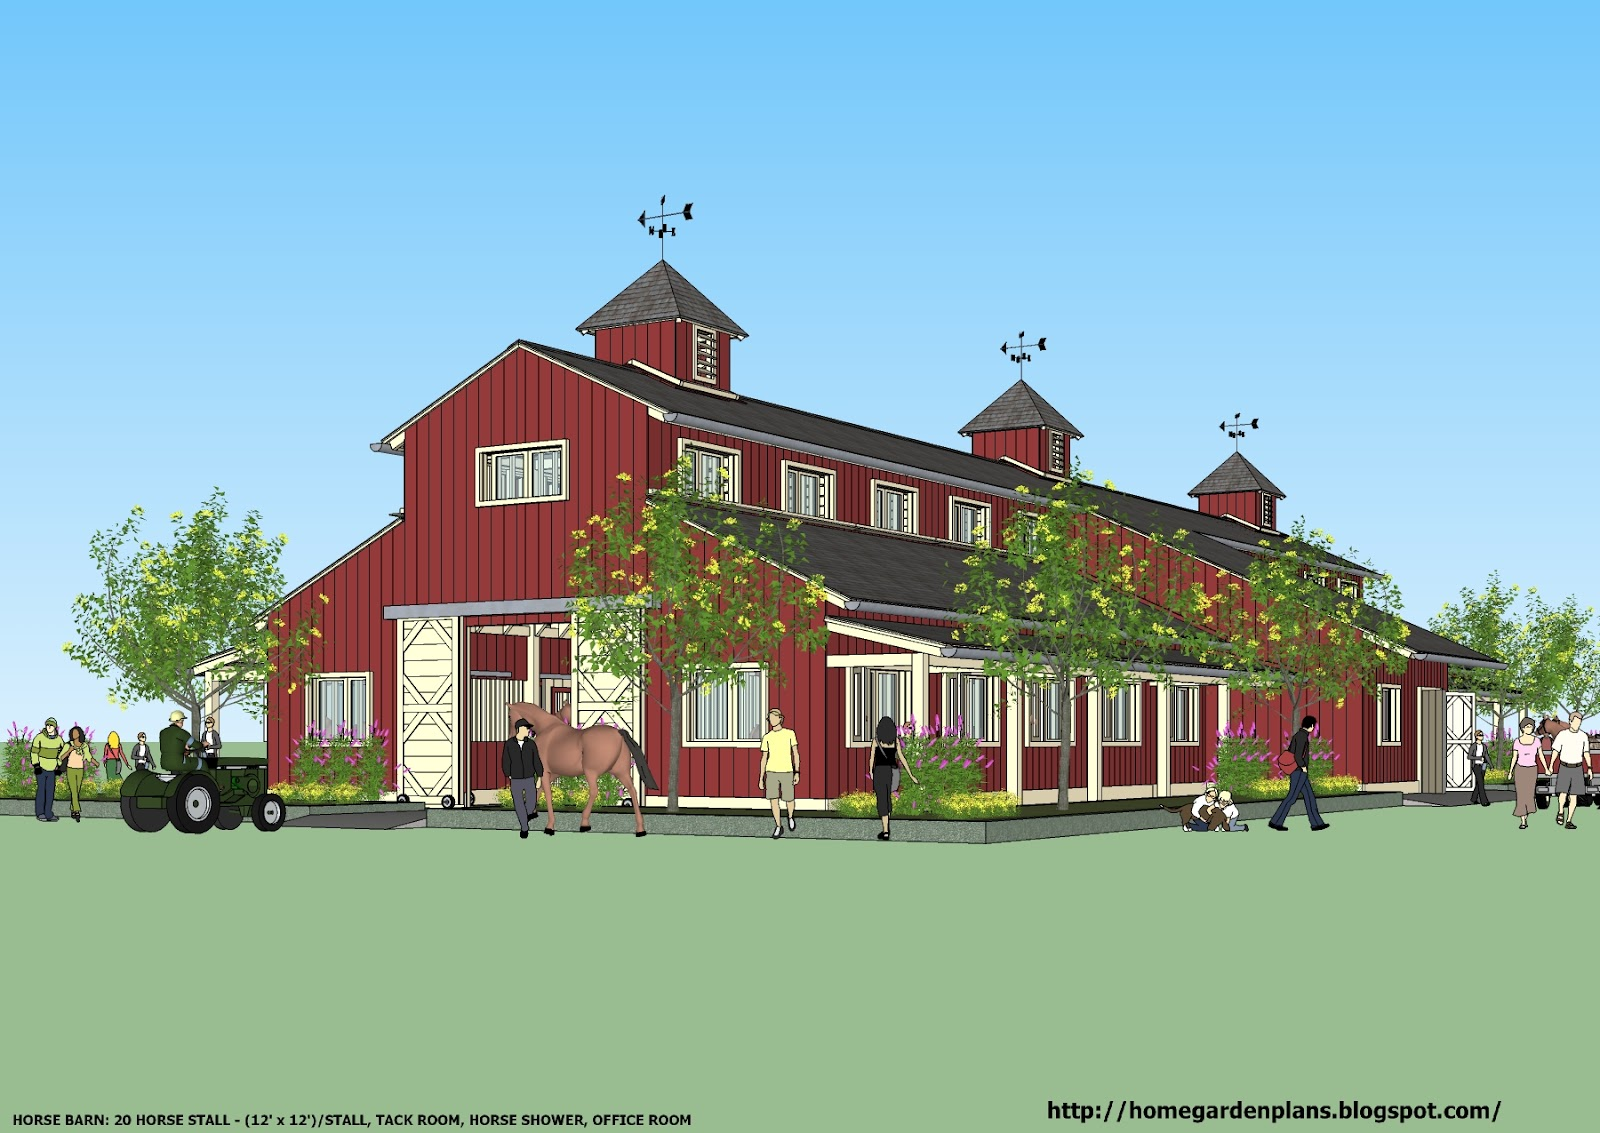 Home garden plans news b20h large horse barn plans for for Barn home designs